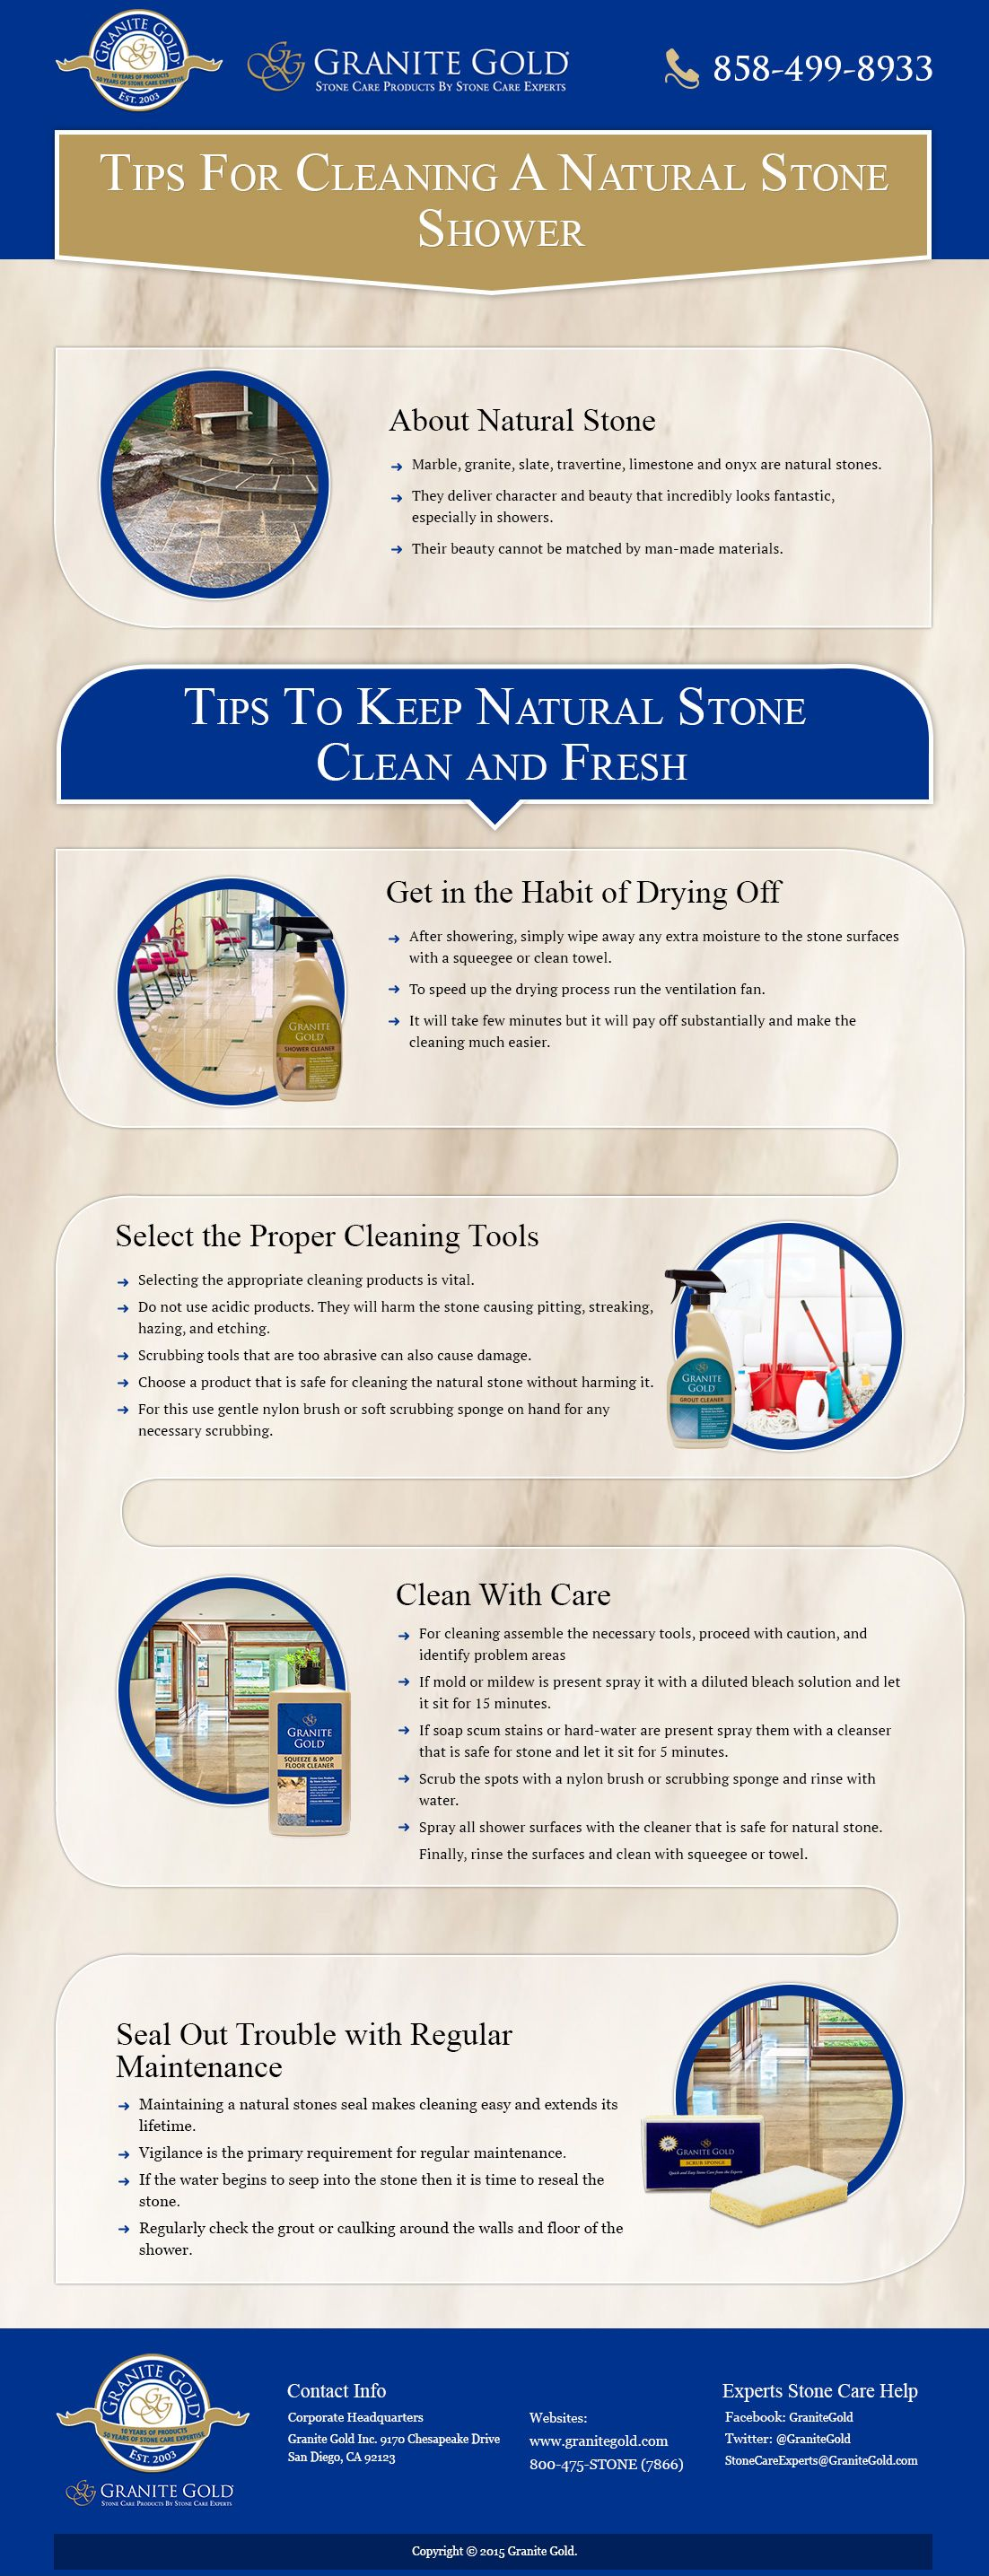 Follow these four tips on how to clean a natural stone shower to